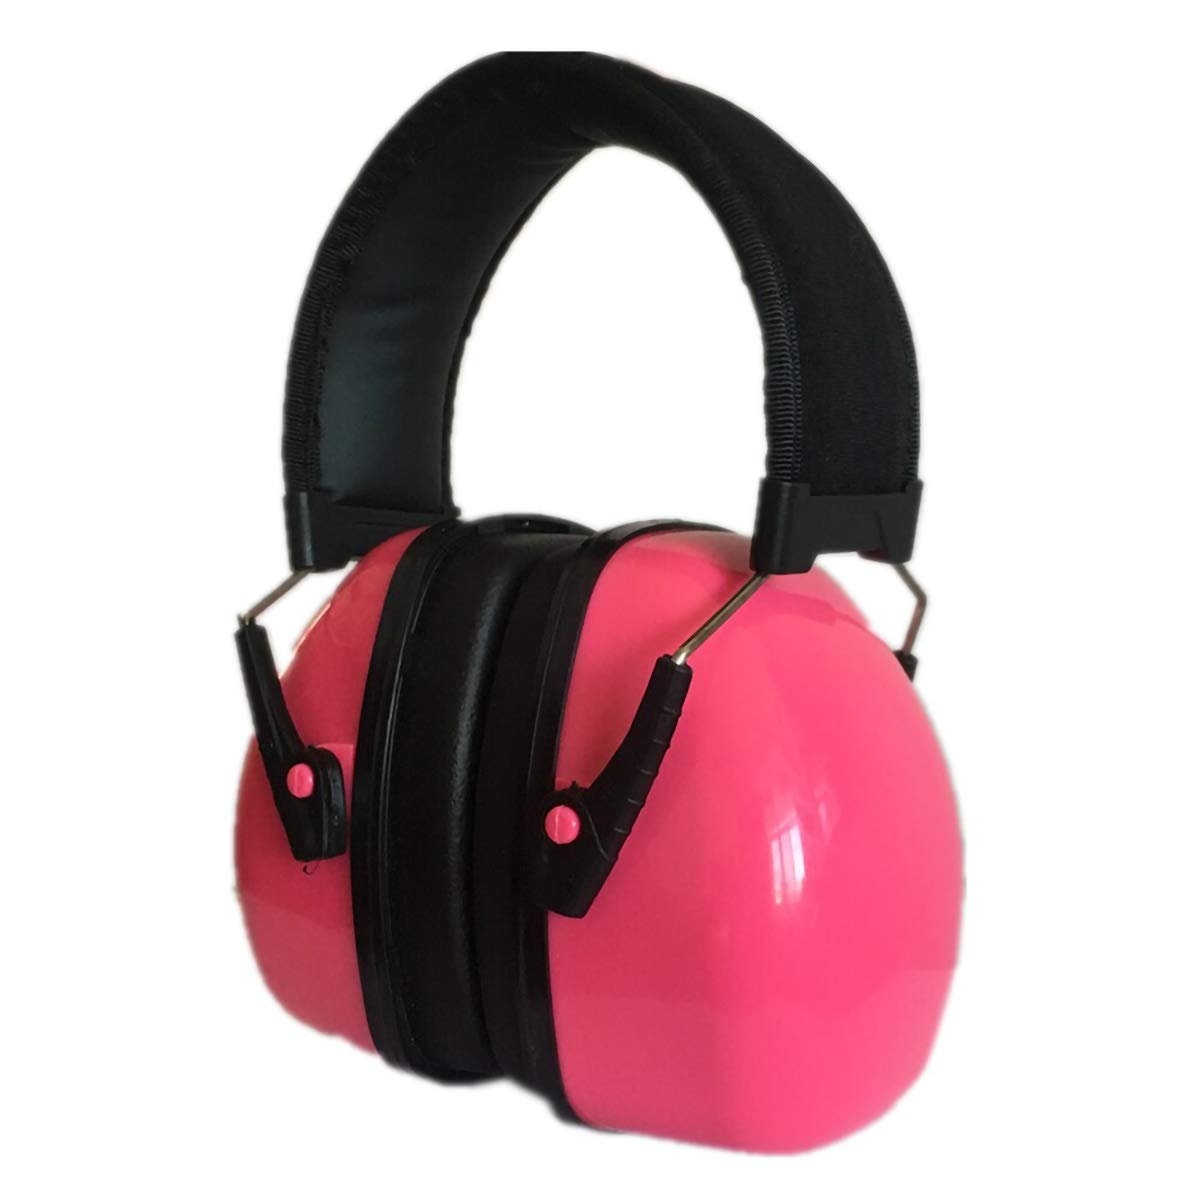 2TRIDENTS Anti Sound Earmuffs Hearing Protectors Ear Protection Noise Reducer Earmuffs for Outdoor Activities Hunting Shooting (pinnk)